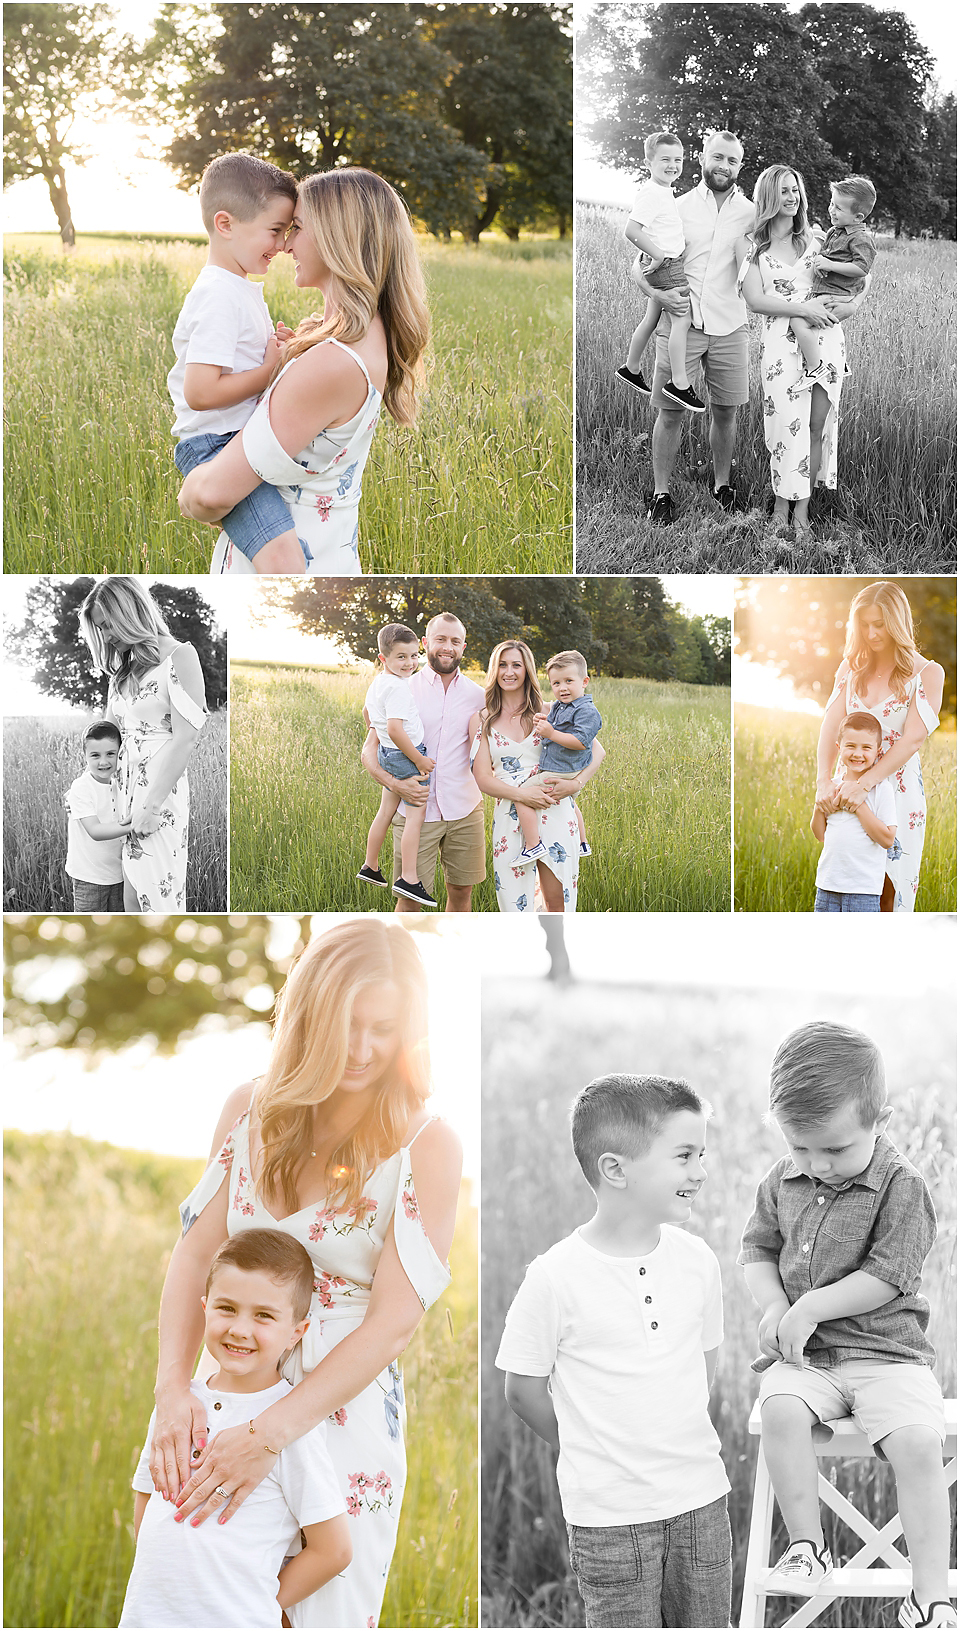 Best Family Photographers in CT | On Location CT Family Photography | CT Family Photographer | Western MA Family Photography | CT Photography | www.kellidease.com